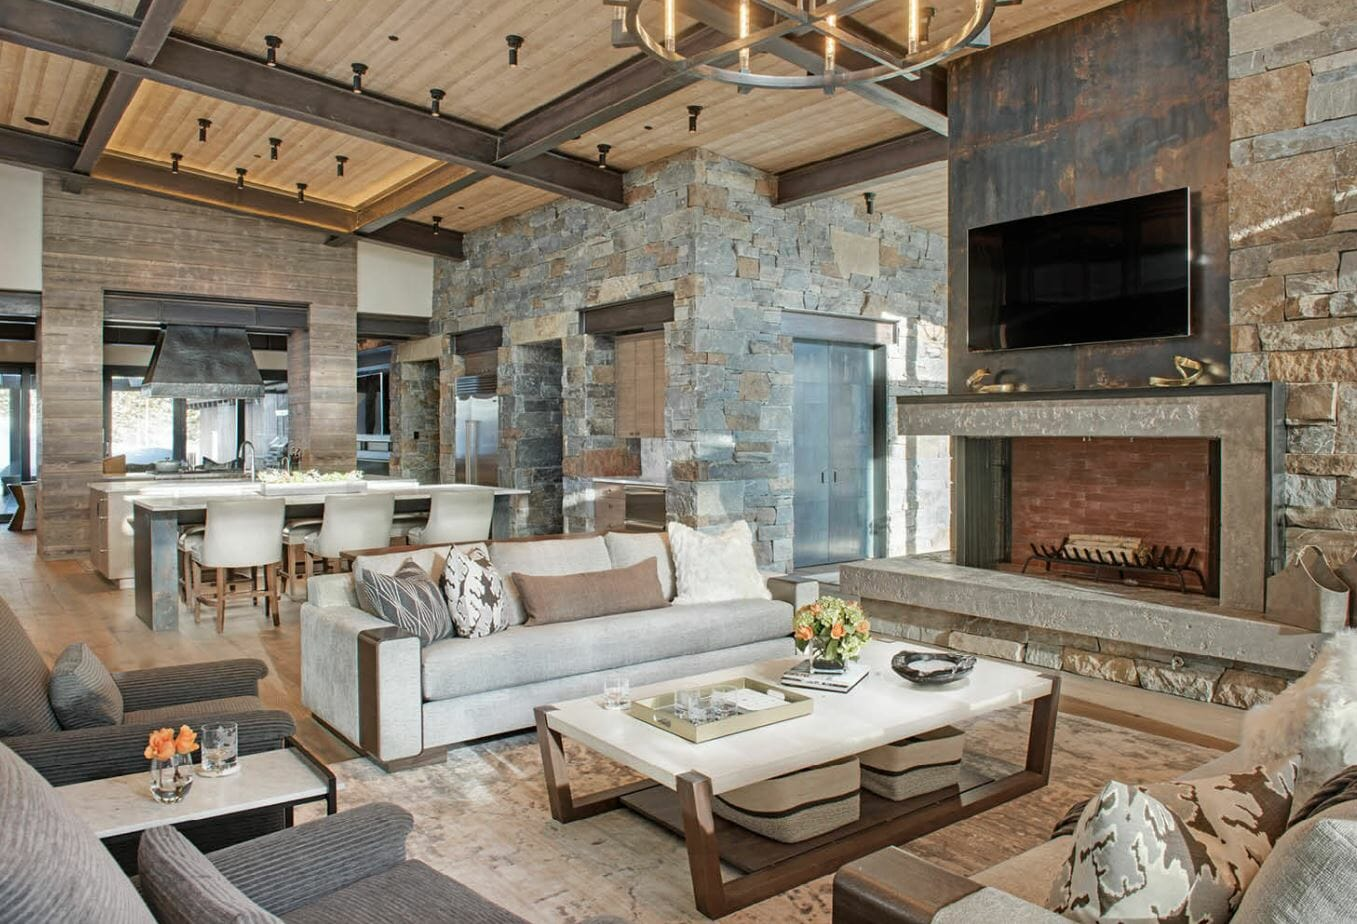 Modern Rustic Interior Design: 7 Best Tips To Create Your ... on Rustic Traditional Decor  id=14432